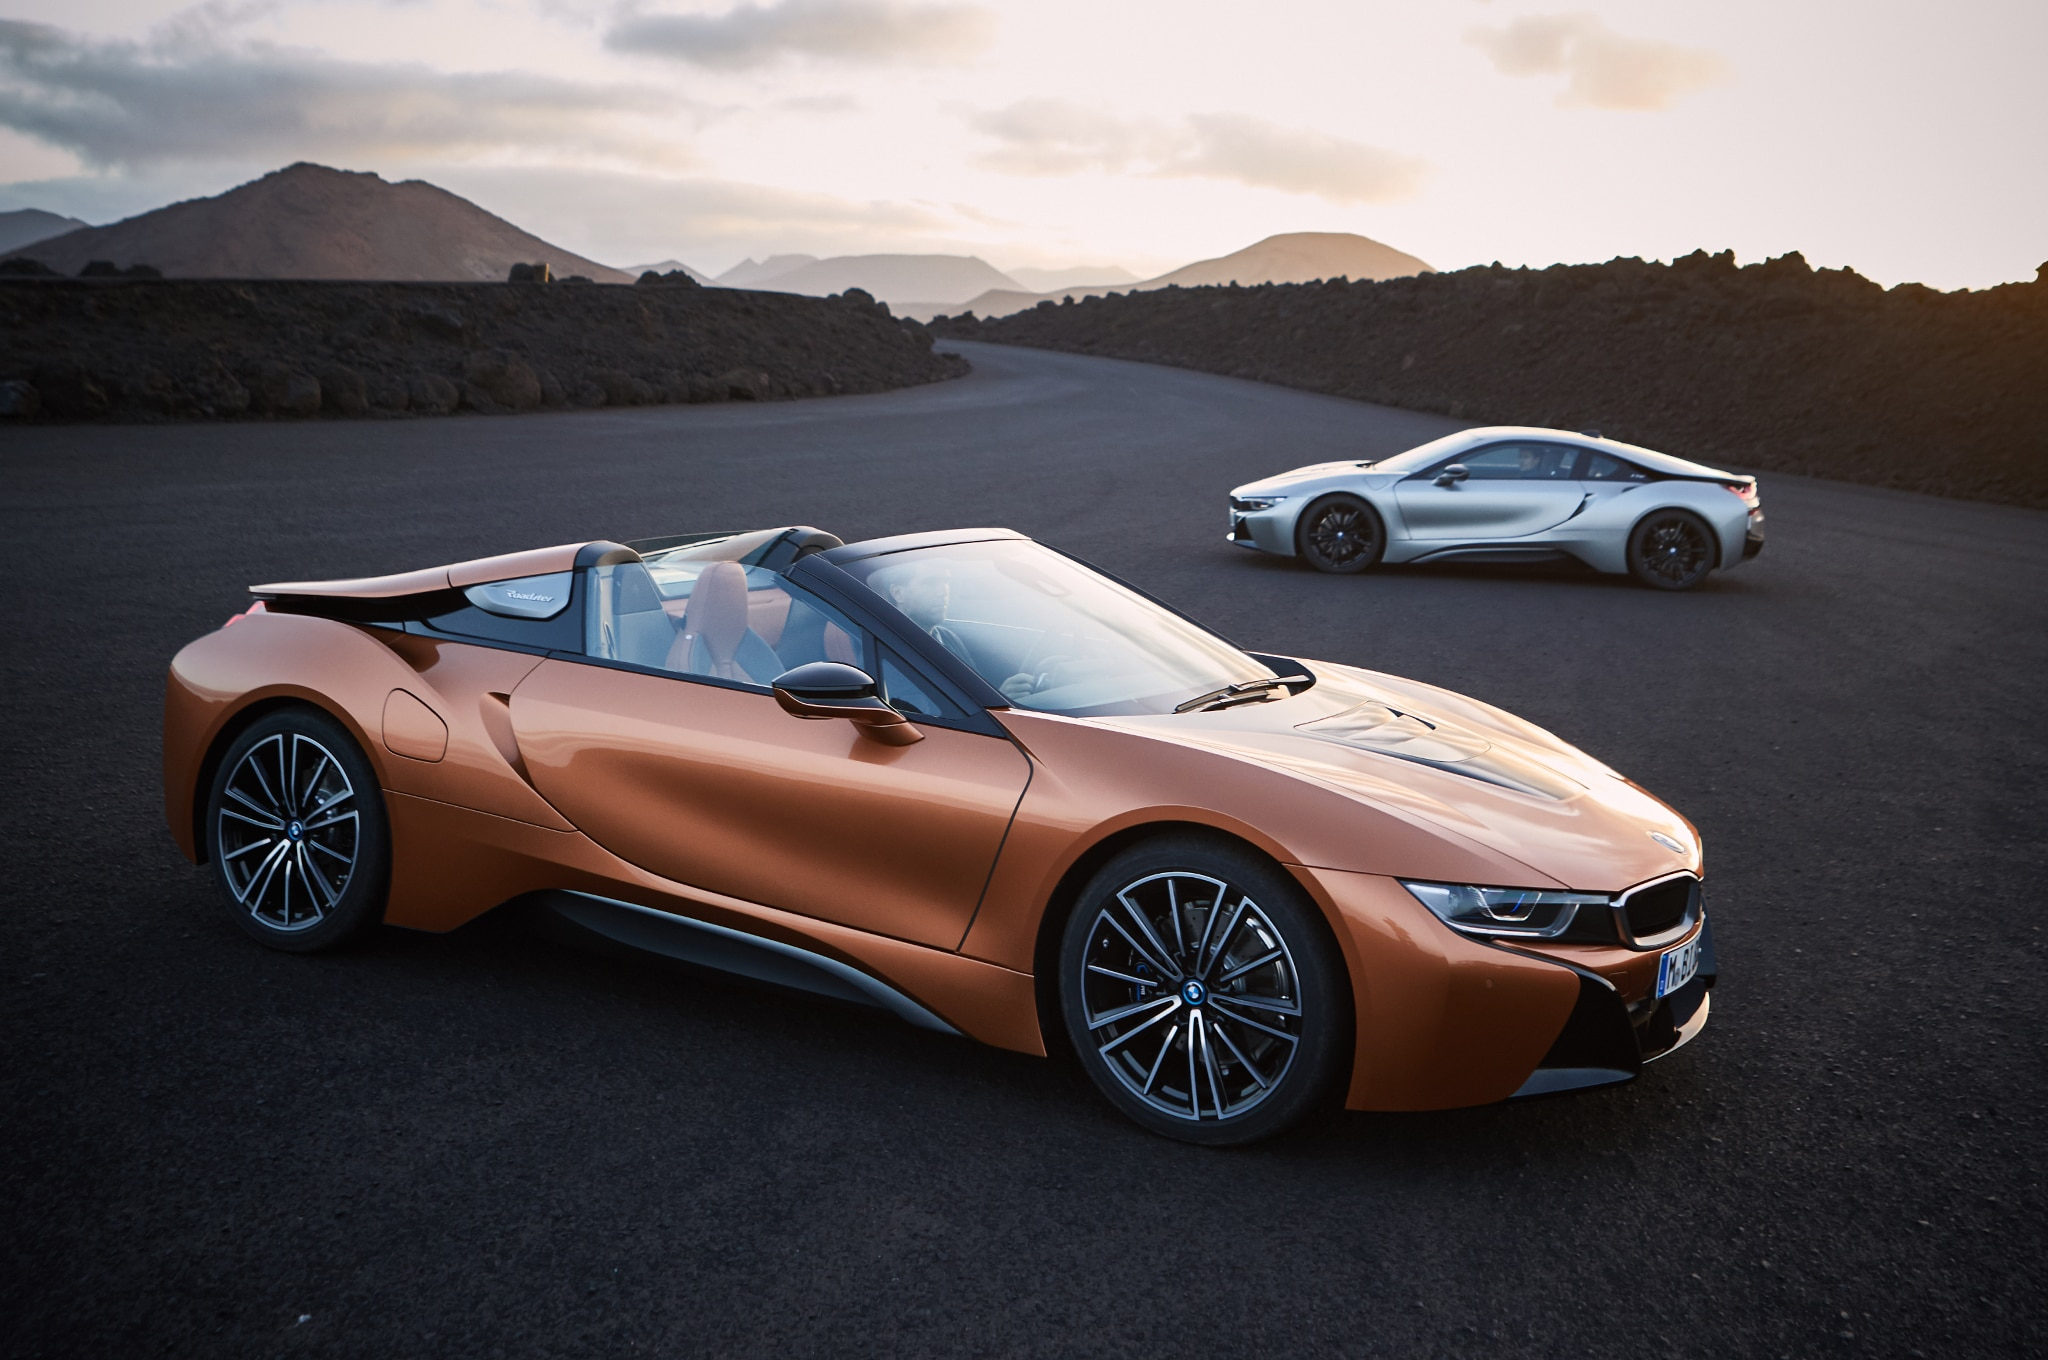 2019 bmw i8 roadster arrives alongside updated coupe automobile magazine. Black Bedroom Furniture Sets. Home Design Ideas